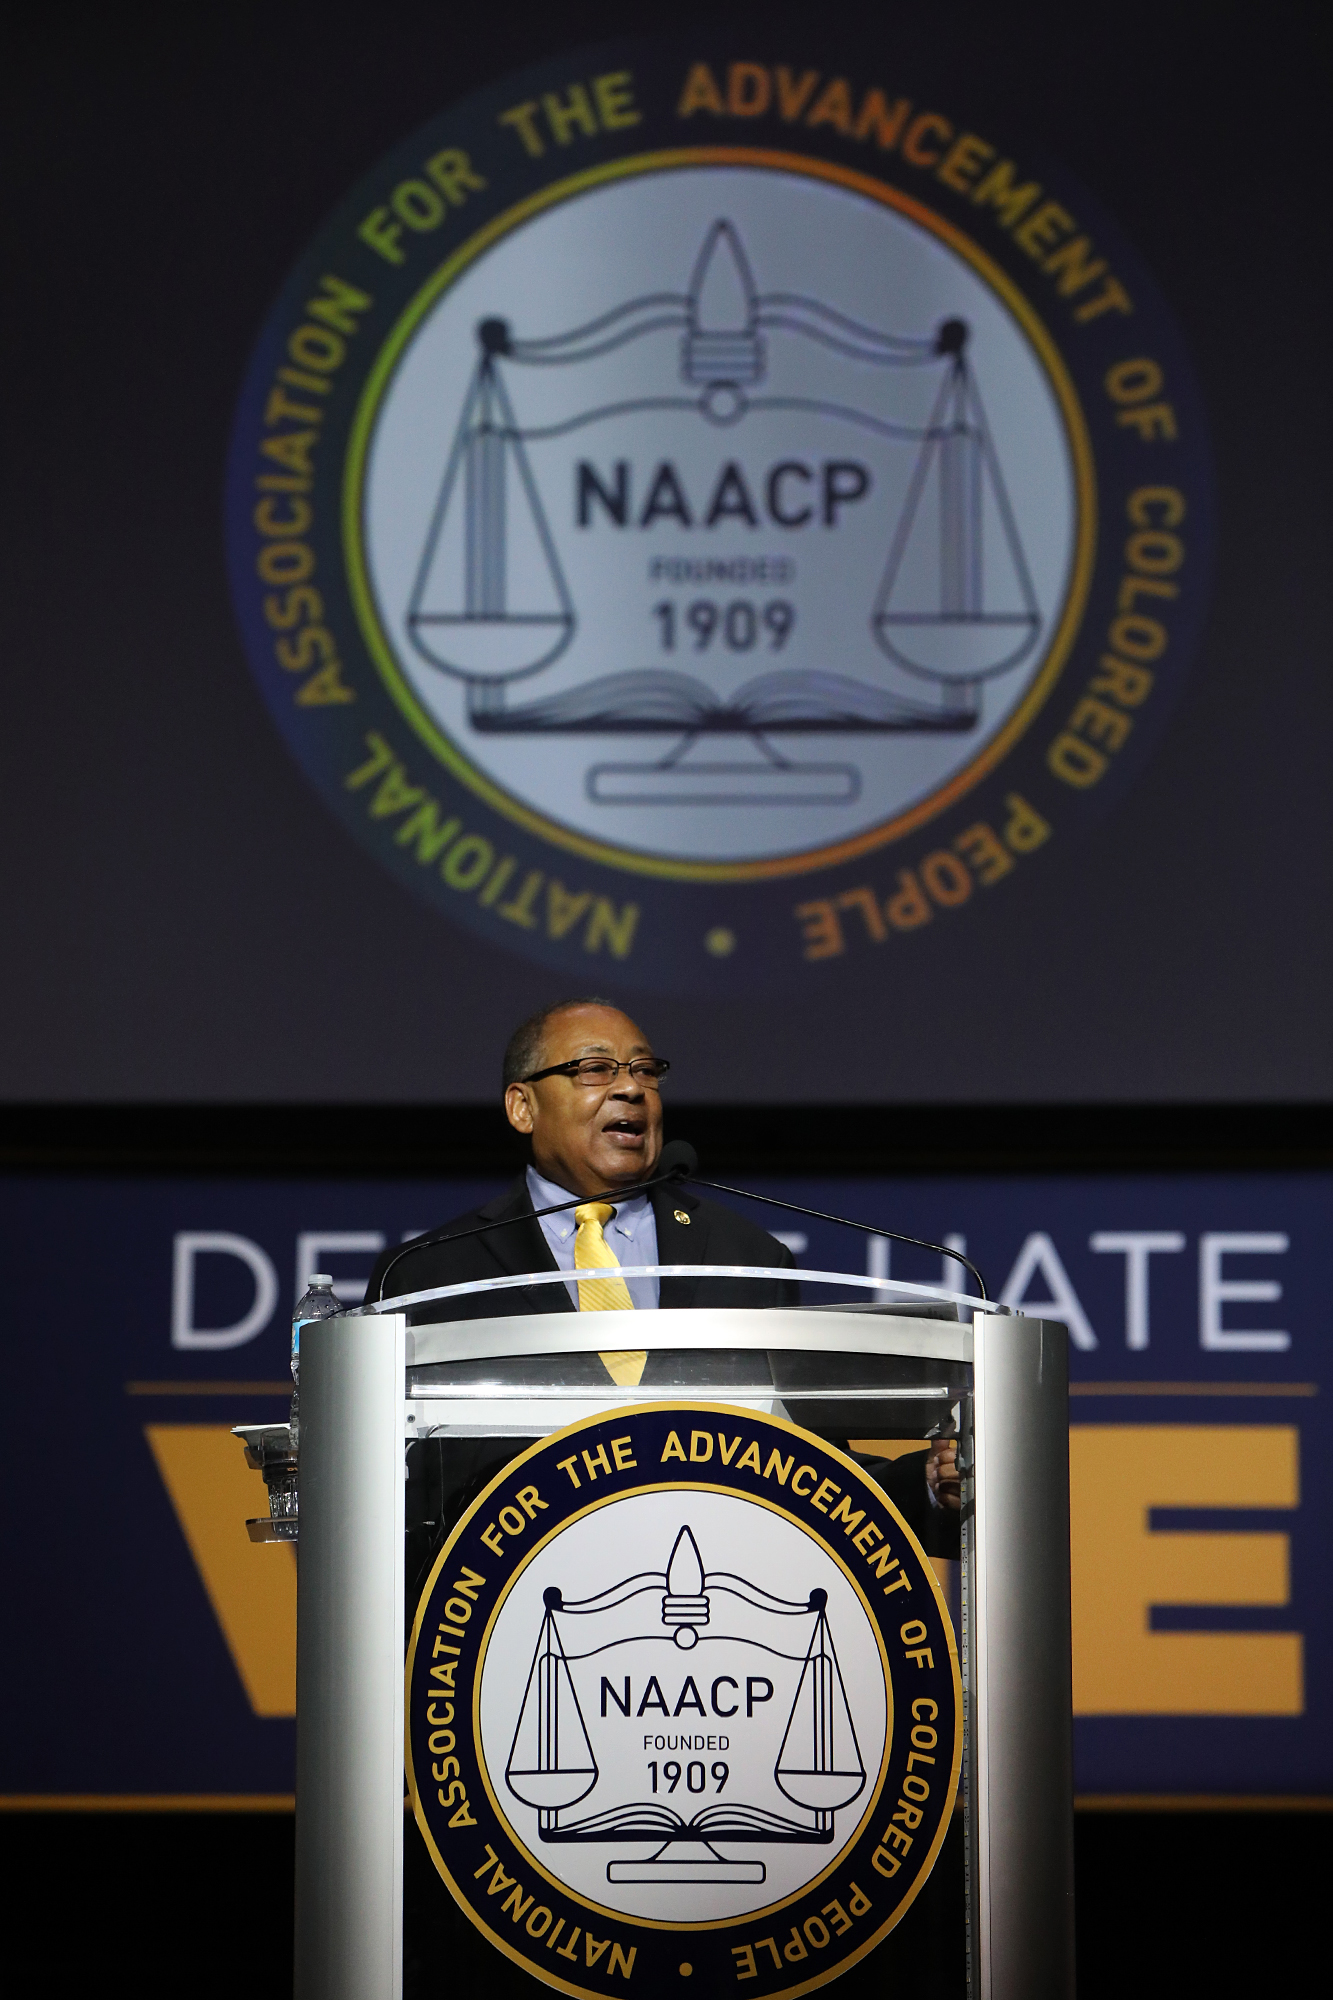 Leon W. Russell, chairman of NAACP national board of directors, speaks during the 109th NAACP Annual Convention at the Henry B. González Convention Center in San Antonio on Sunday, July 15, 2018.